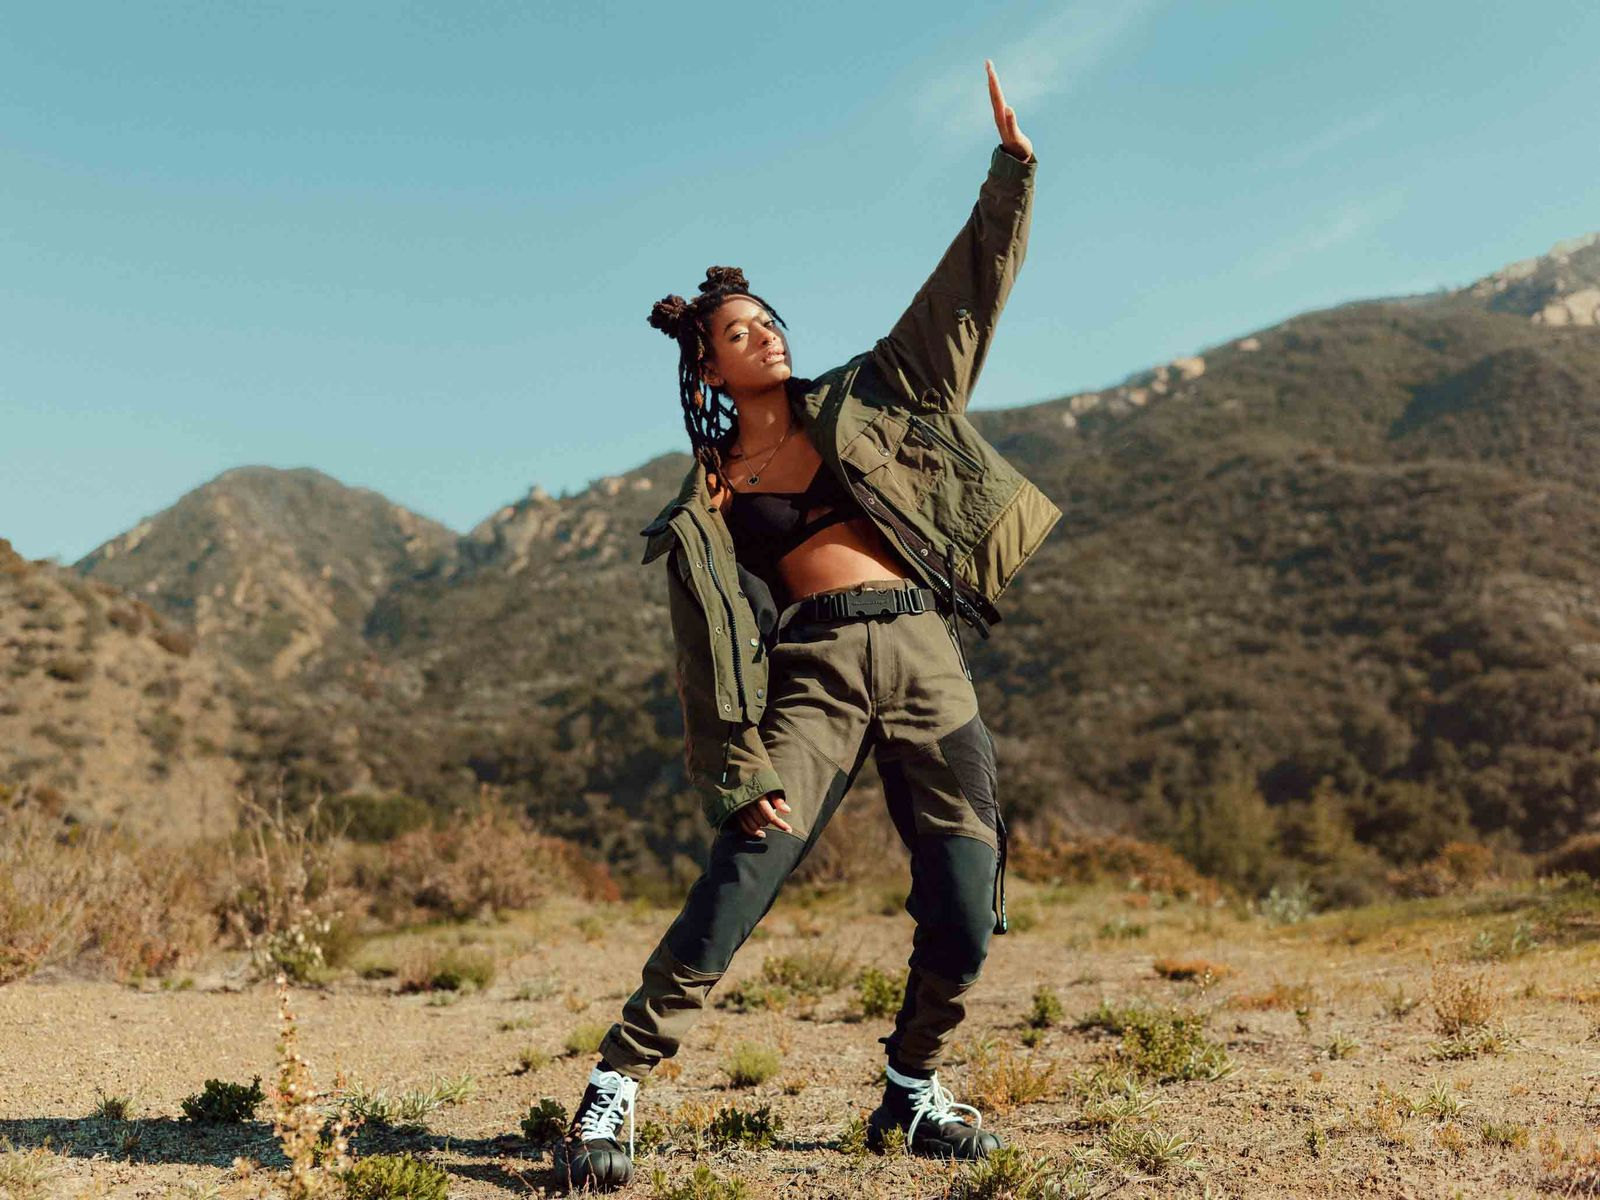 Willow Smith makes her debut as Onitsuka Tiger's new brand ambassador in FW20 campaign. (The campaign was shot before Covid-19).